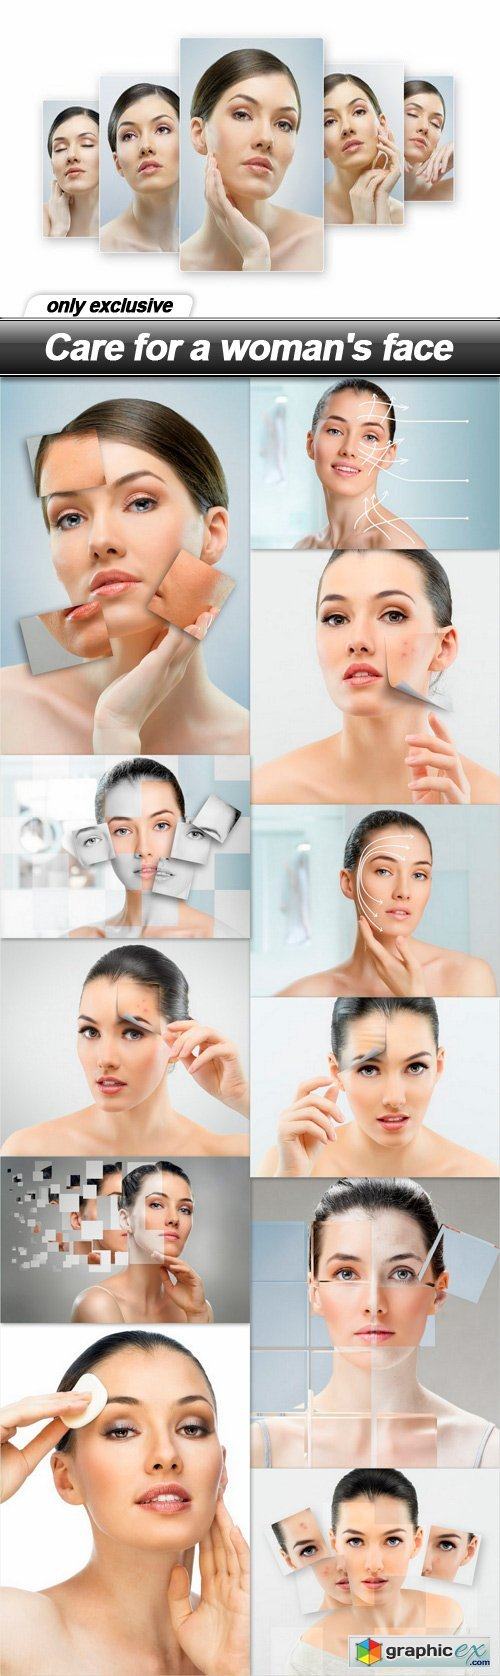 Care for a woman's face - 12 UHQ JPEG